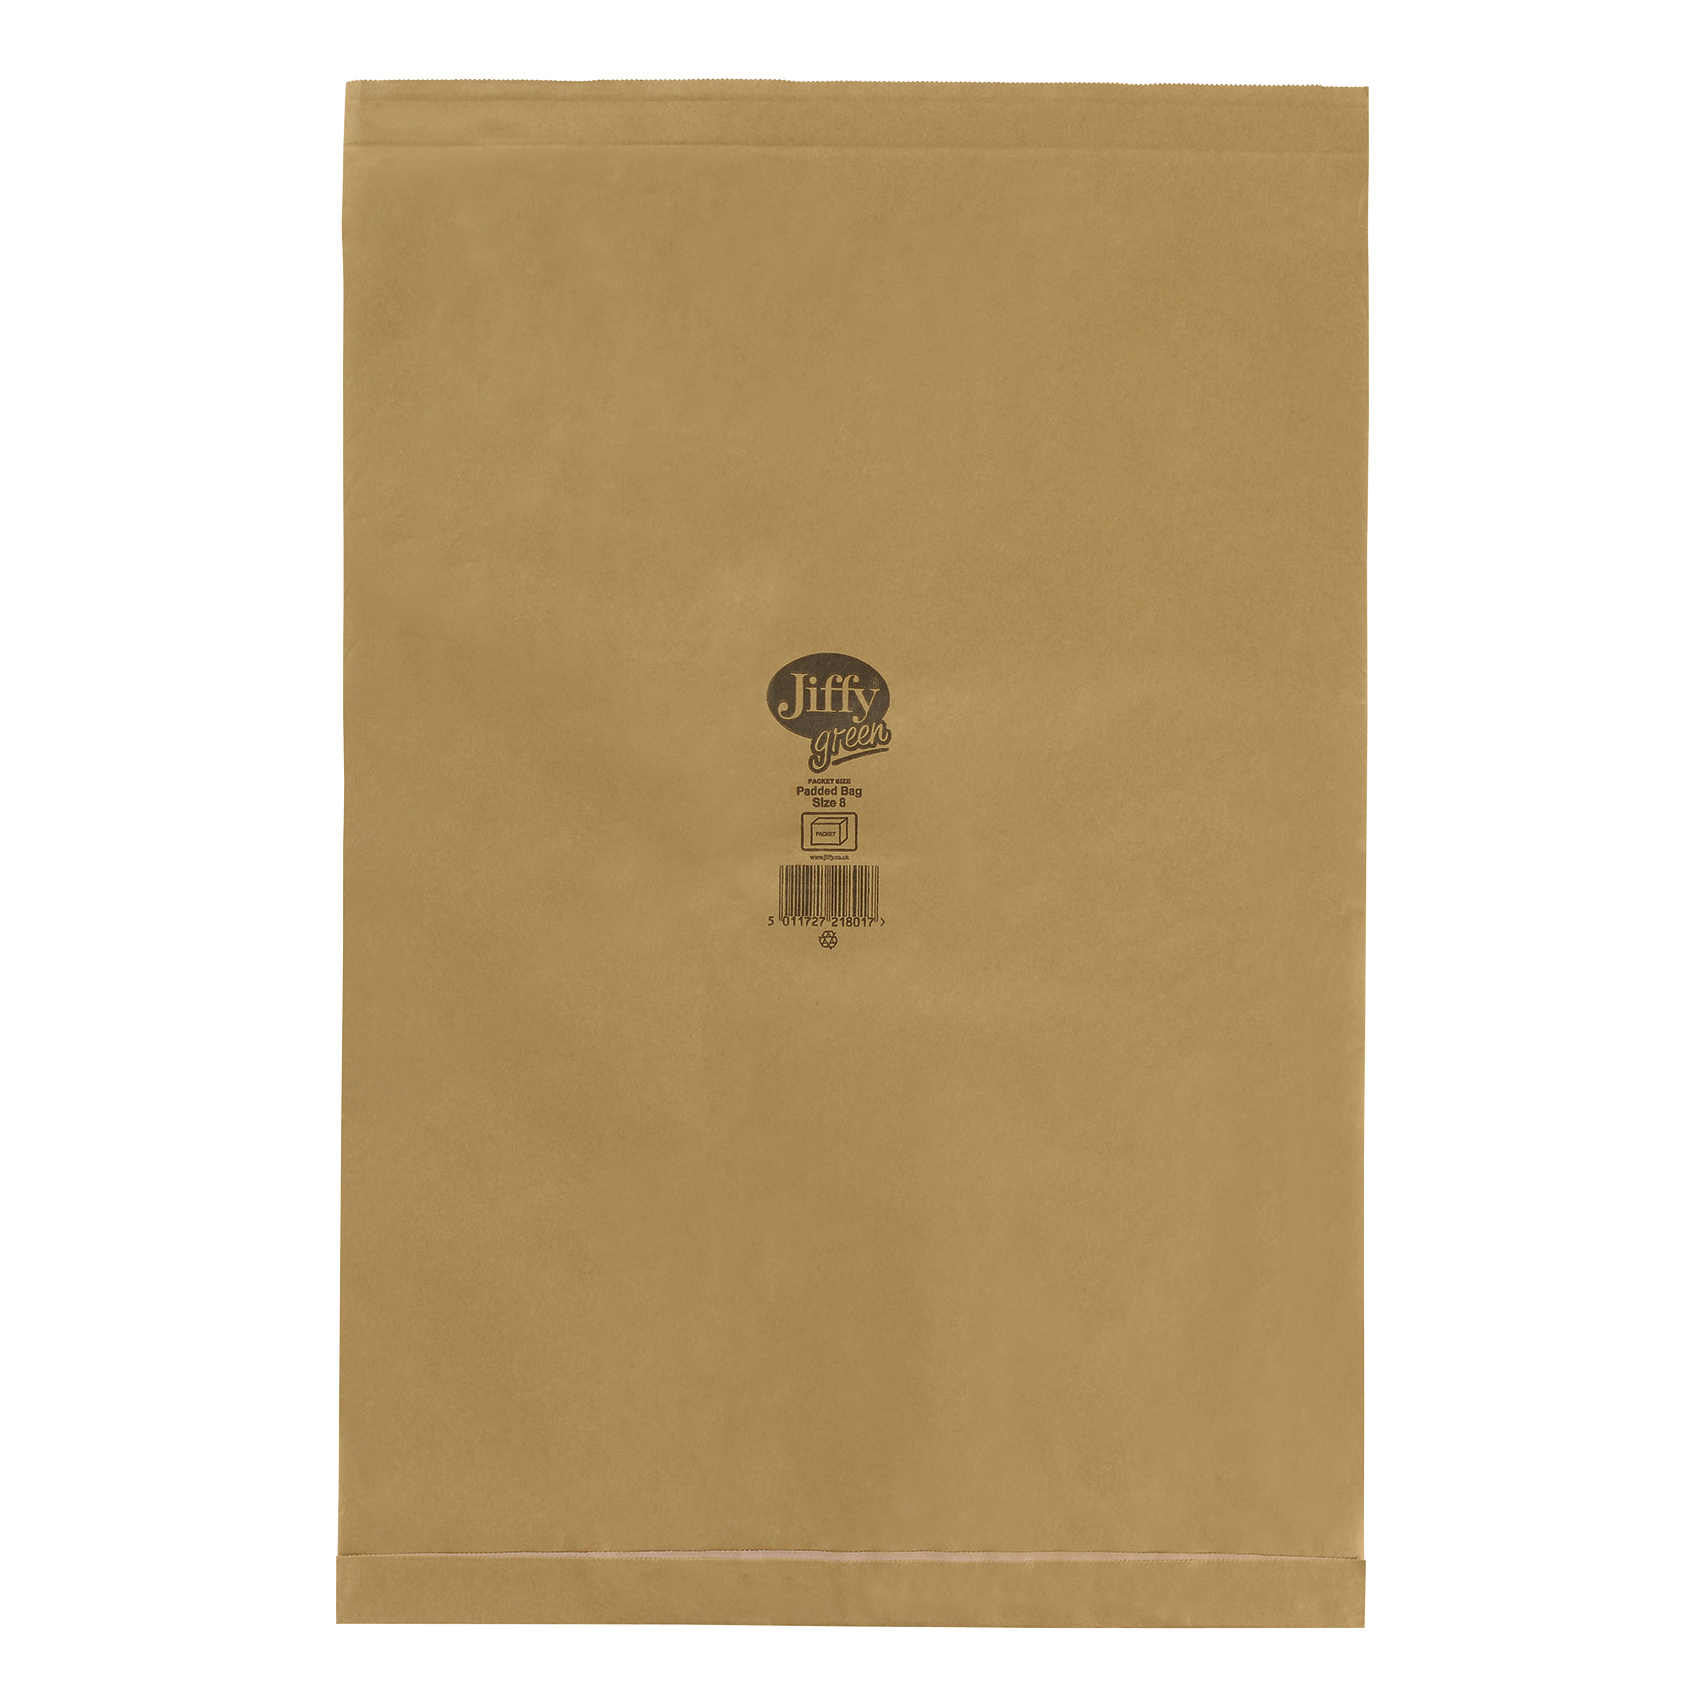 Padded Bags & Envelopes Jiffy Padded Bag Envelopes Size 8 442x661mm Brown Ref JPB-8 Pack 50